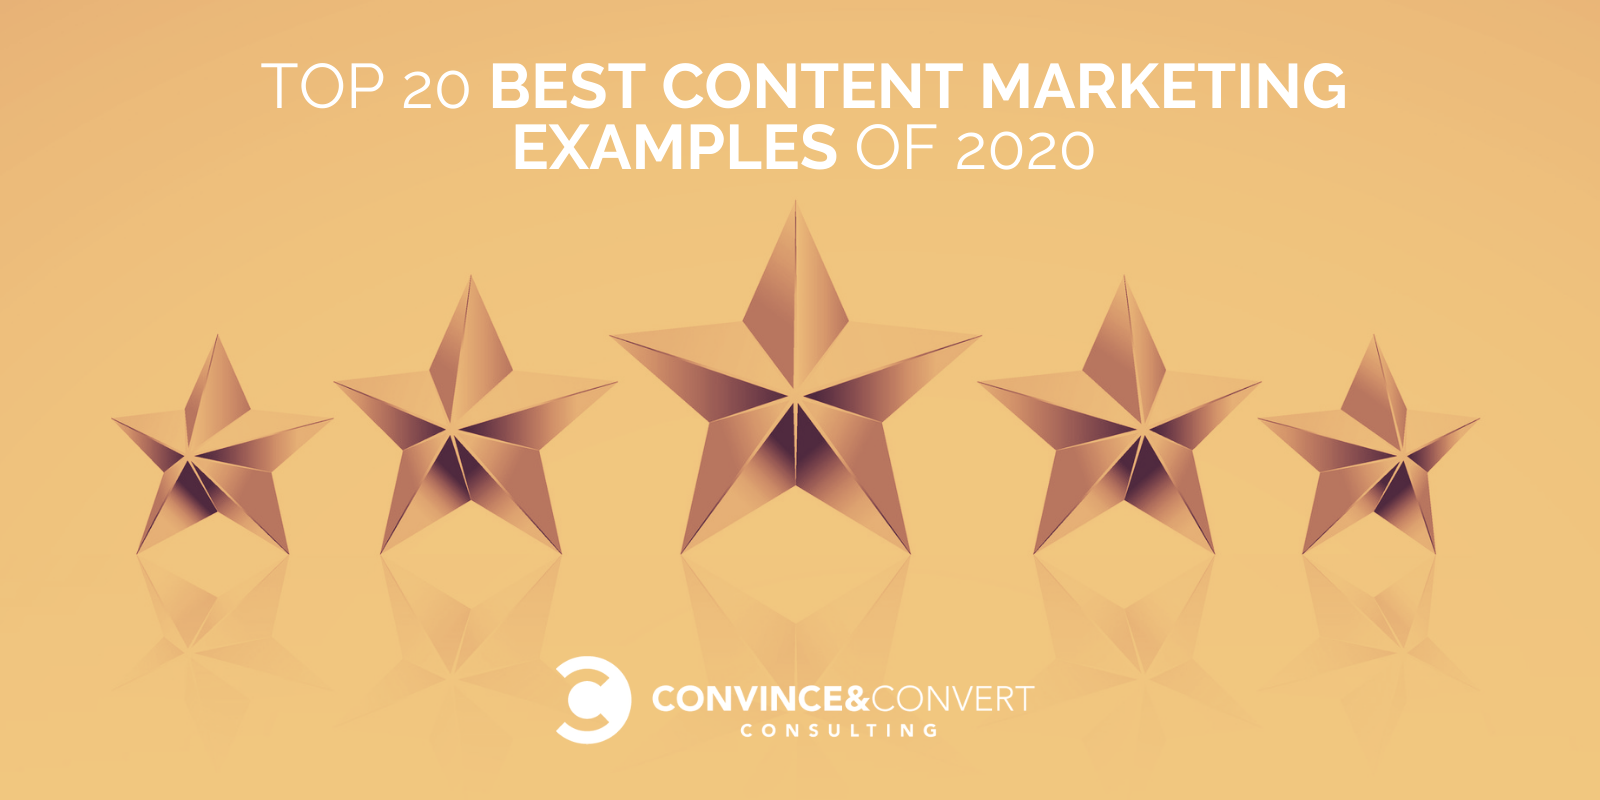 Top 20 Simplest Sing Marketing Examples of 2020